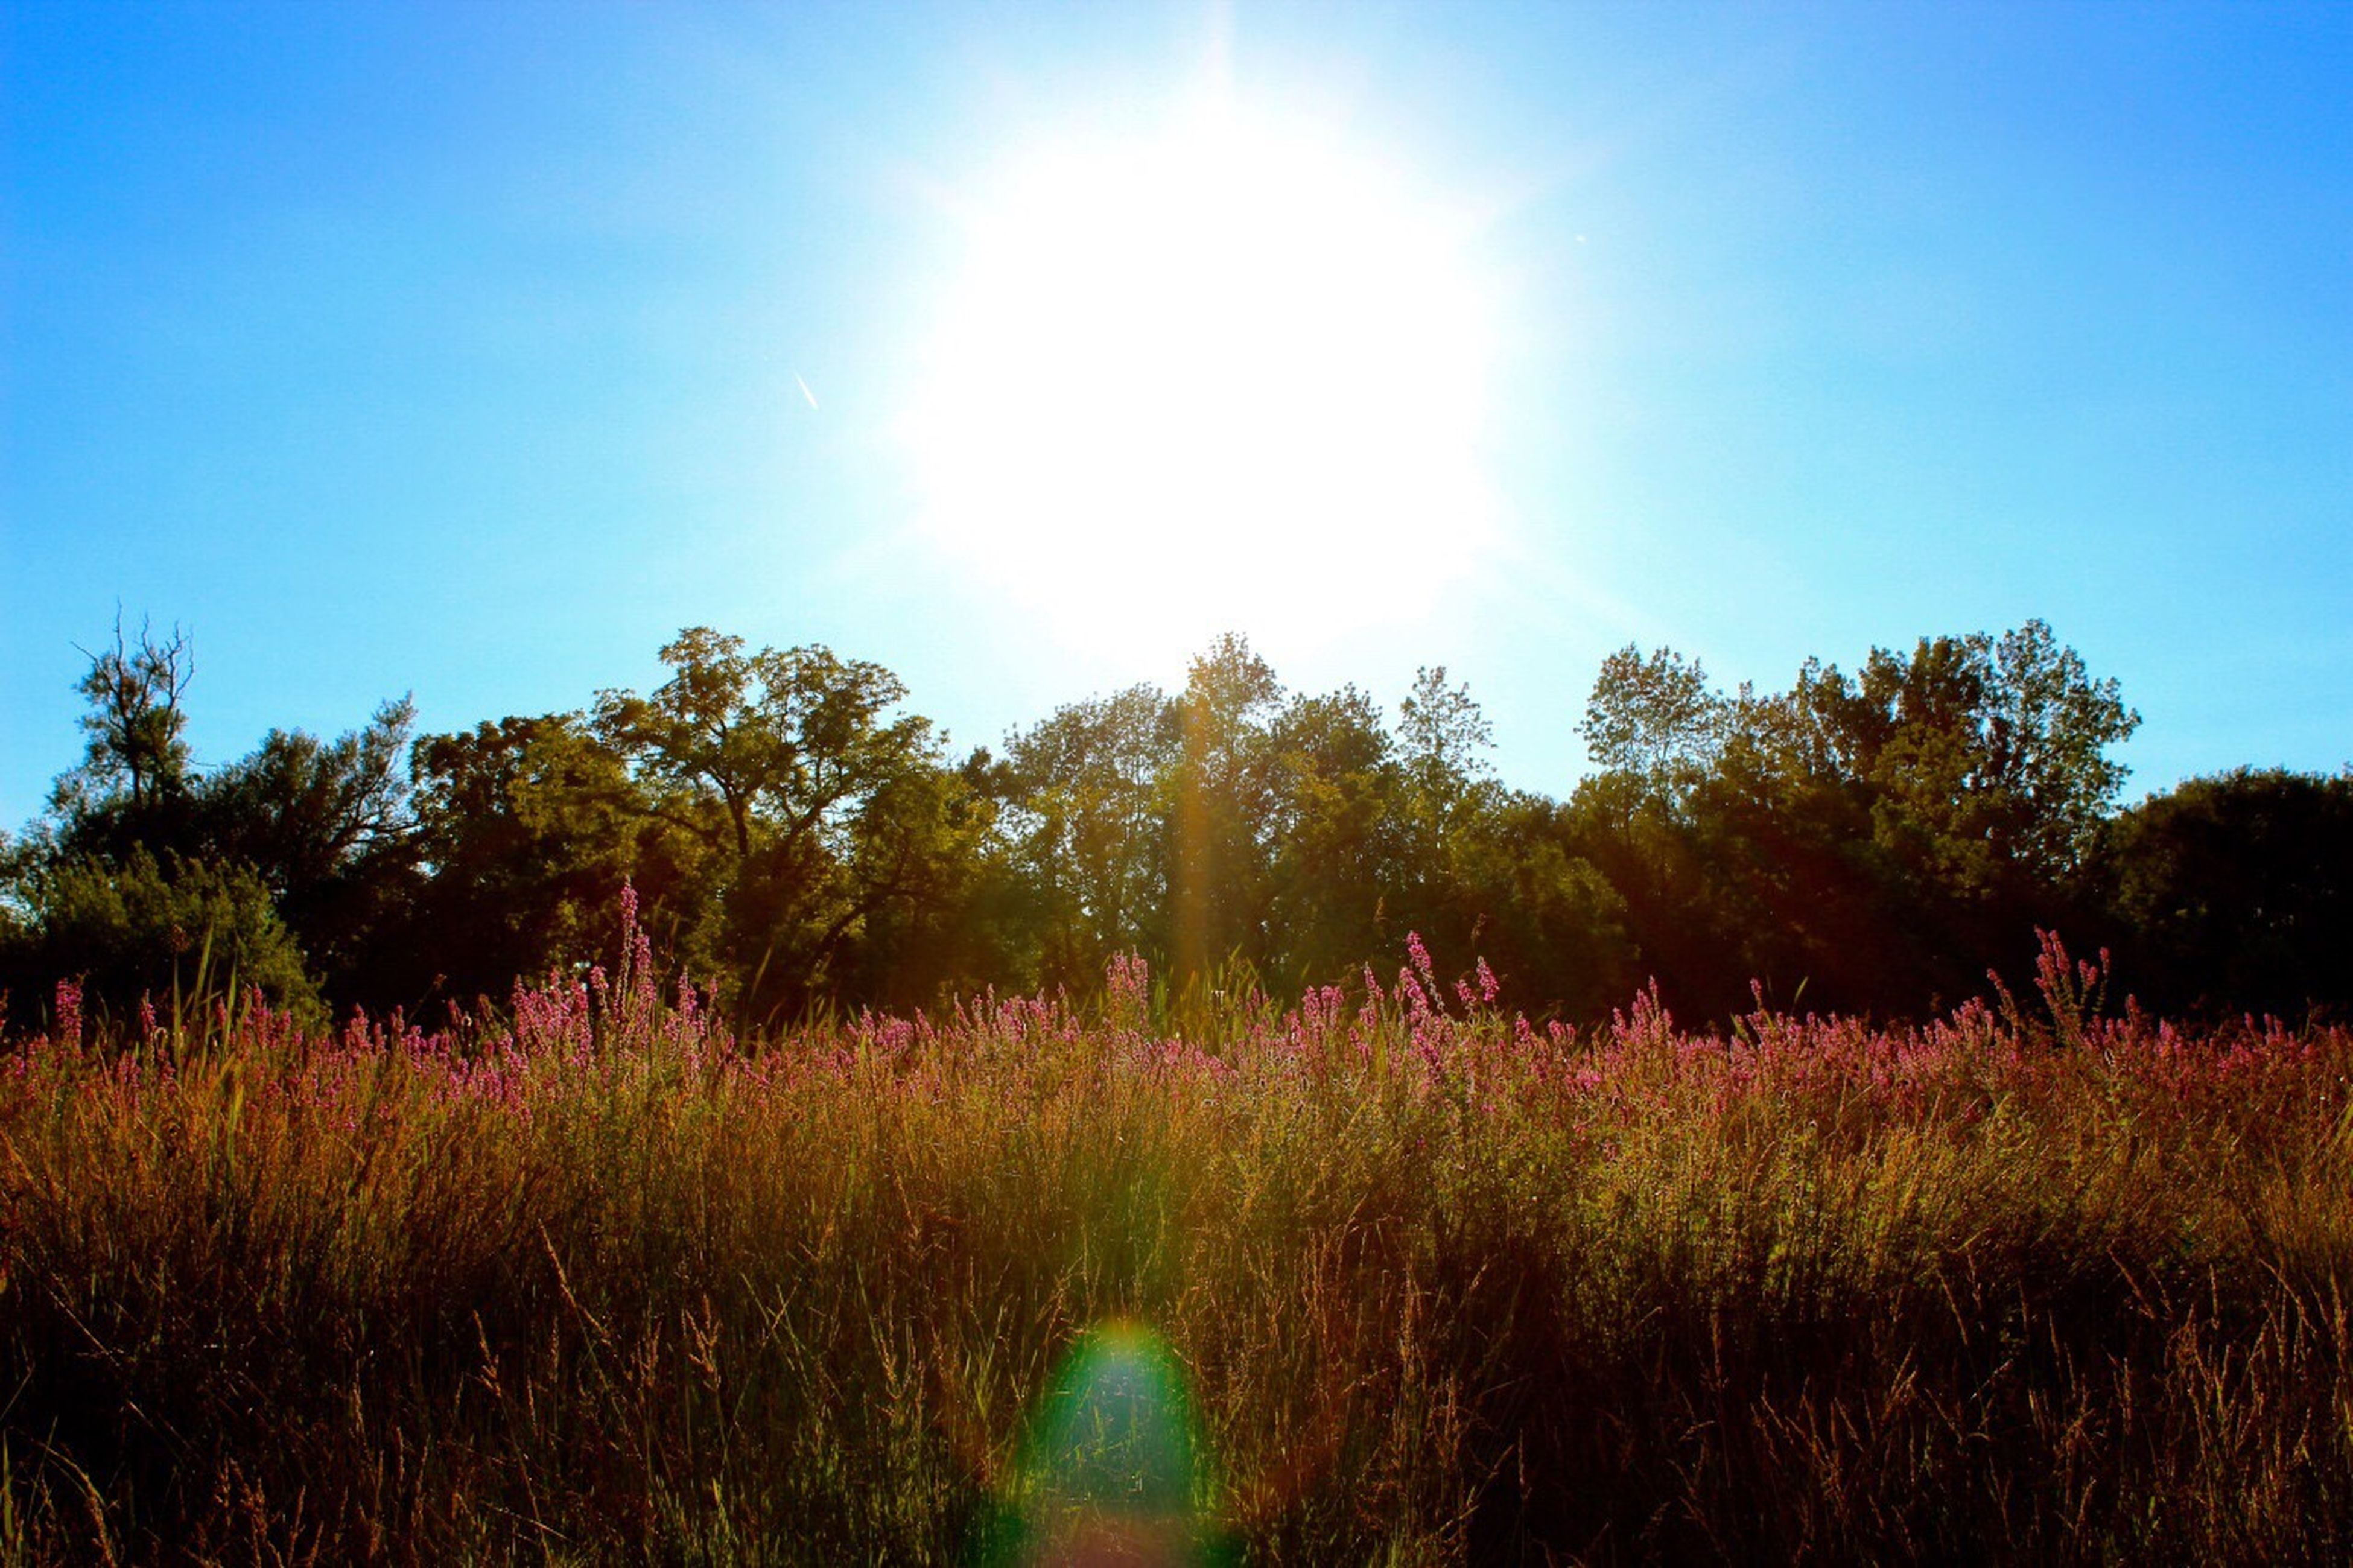 growth, nature, beauty in nature, tree, flower, sunlight, sky, tranquil scene, tranquility, scenics, plant, sun, no people, sunbeam, field, outdoors, clear sky, landscape, freshness, day